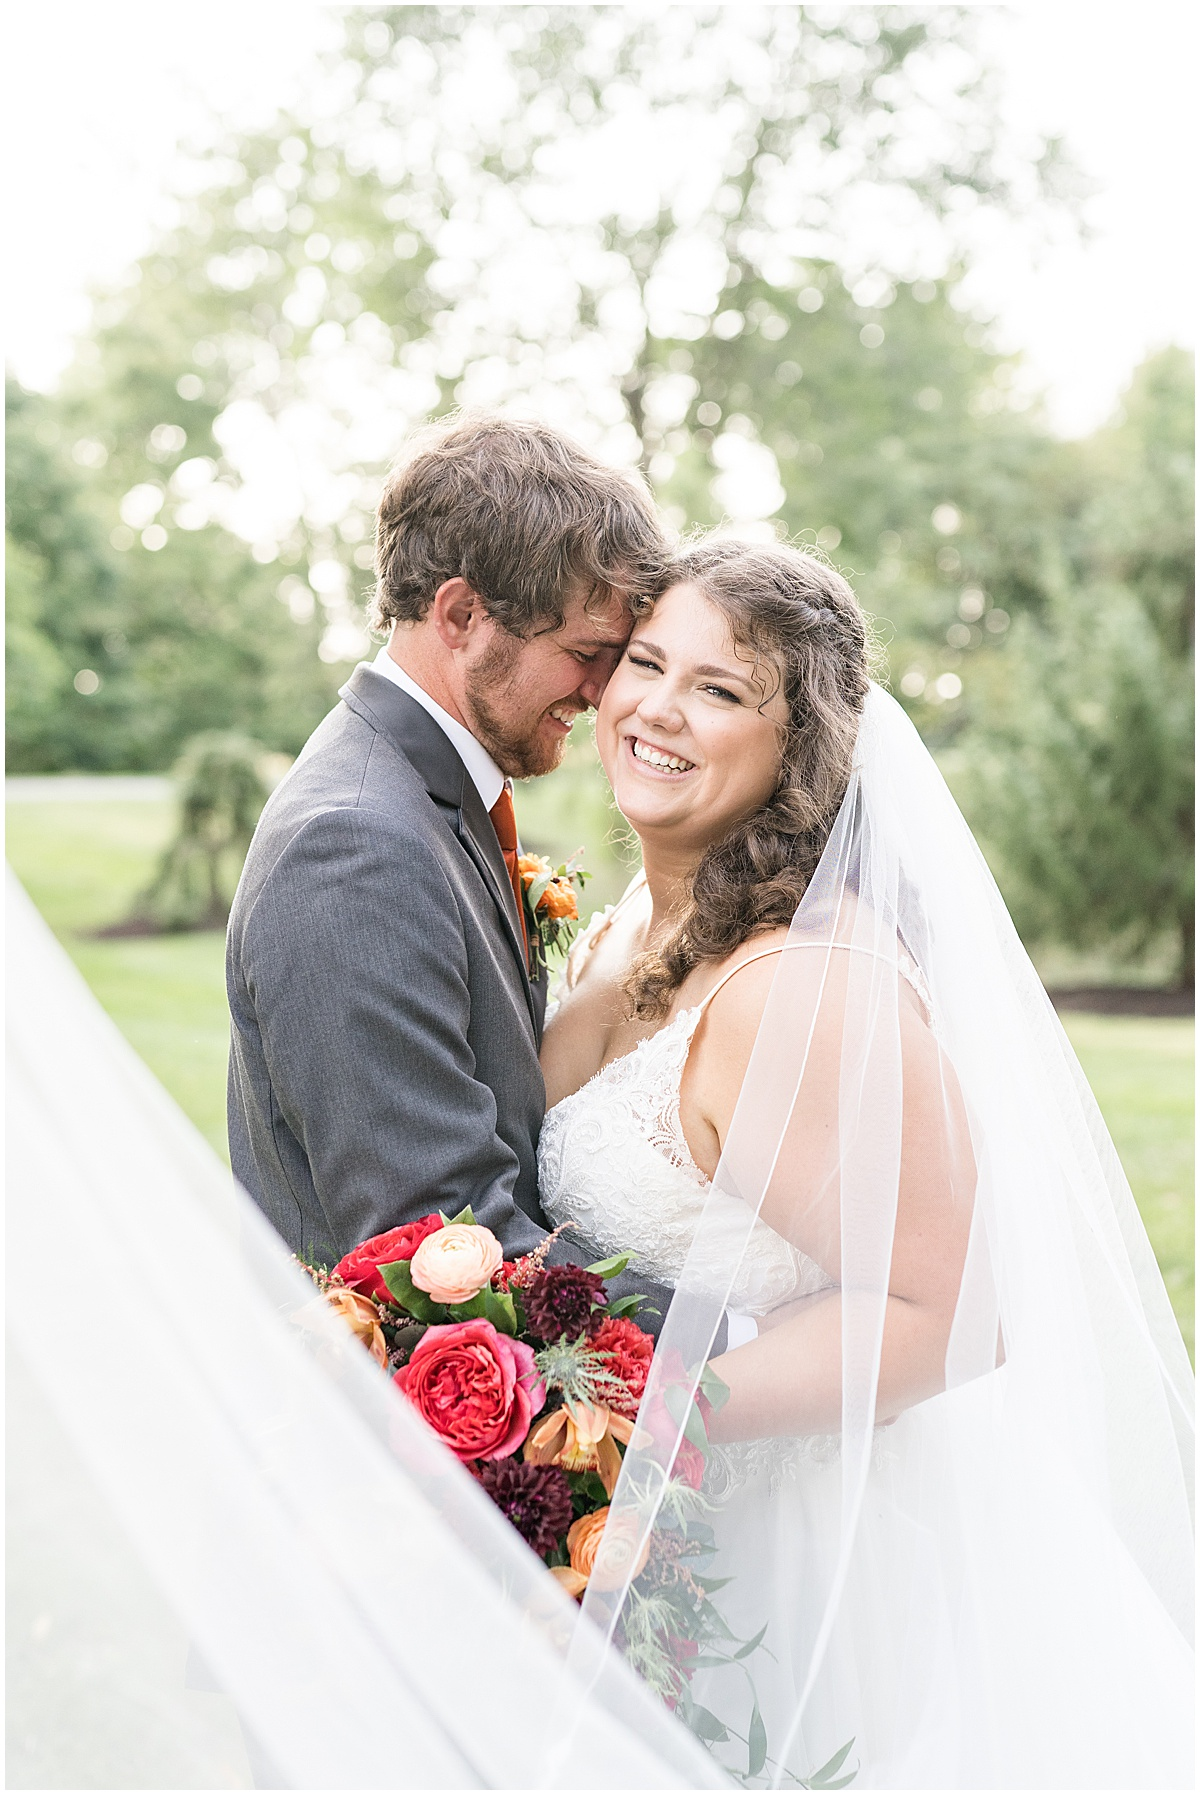 Bride and groom photo during outdoor private property wedding in Frankfort, Indiana by Victoria Rayburn Photography